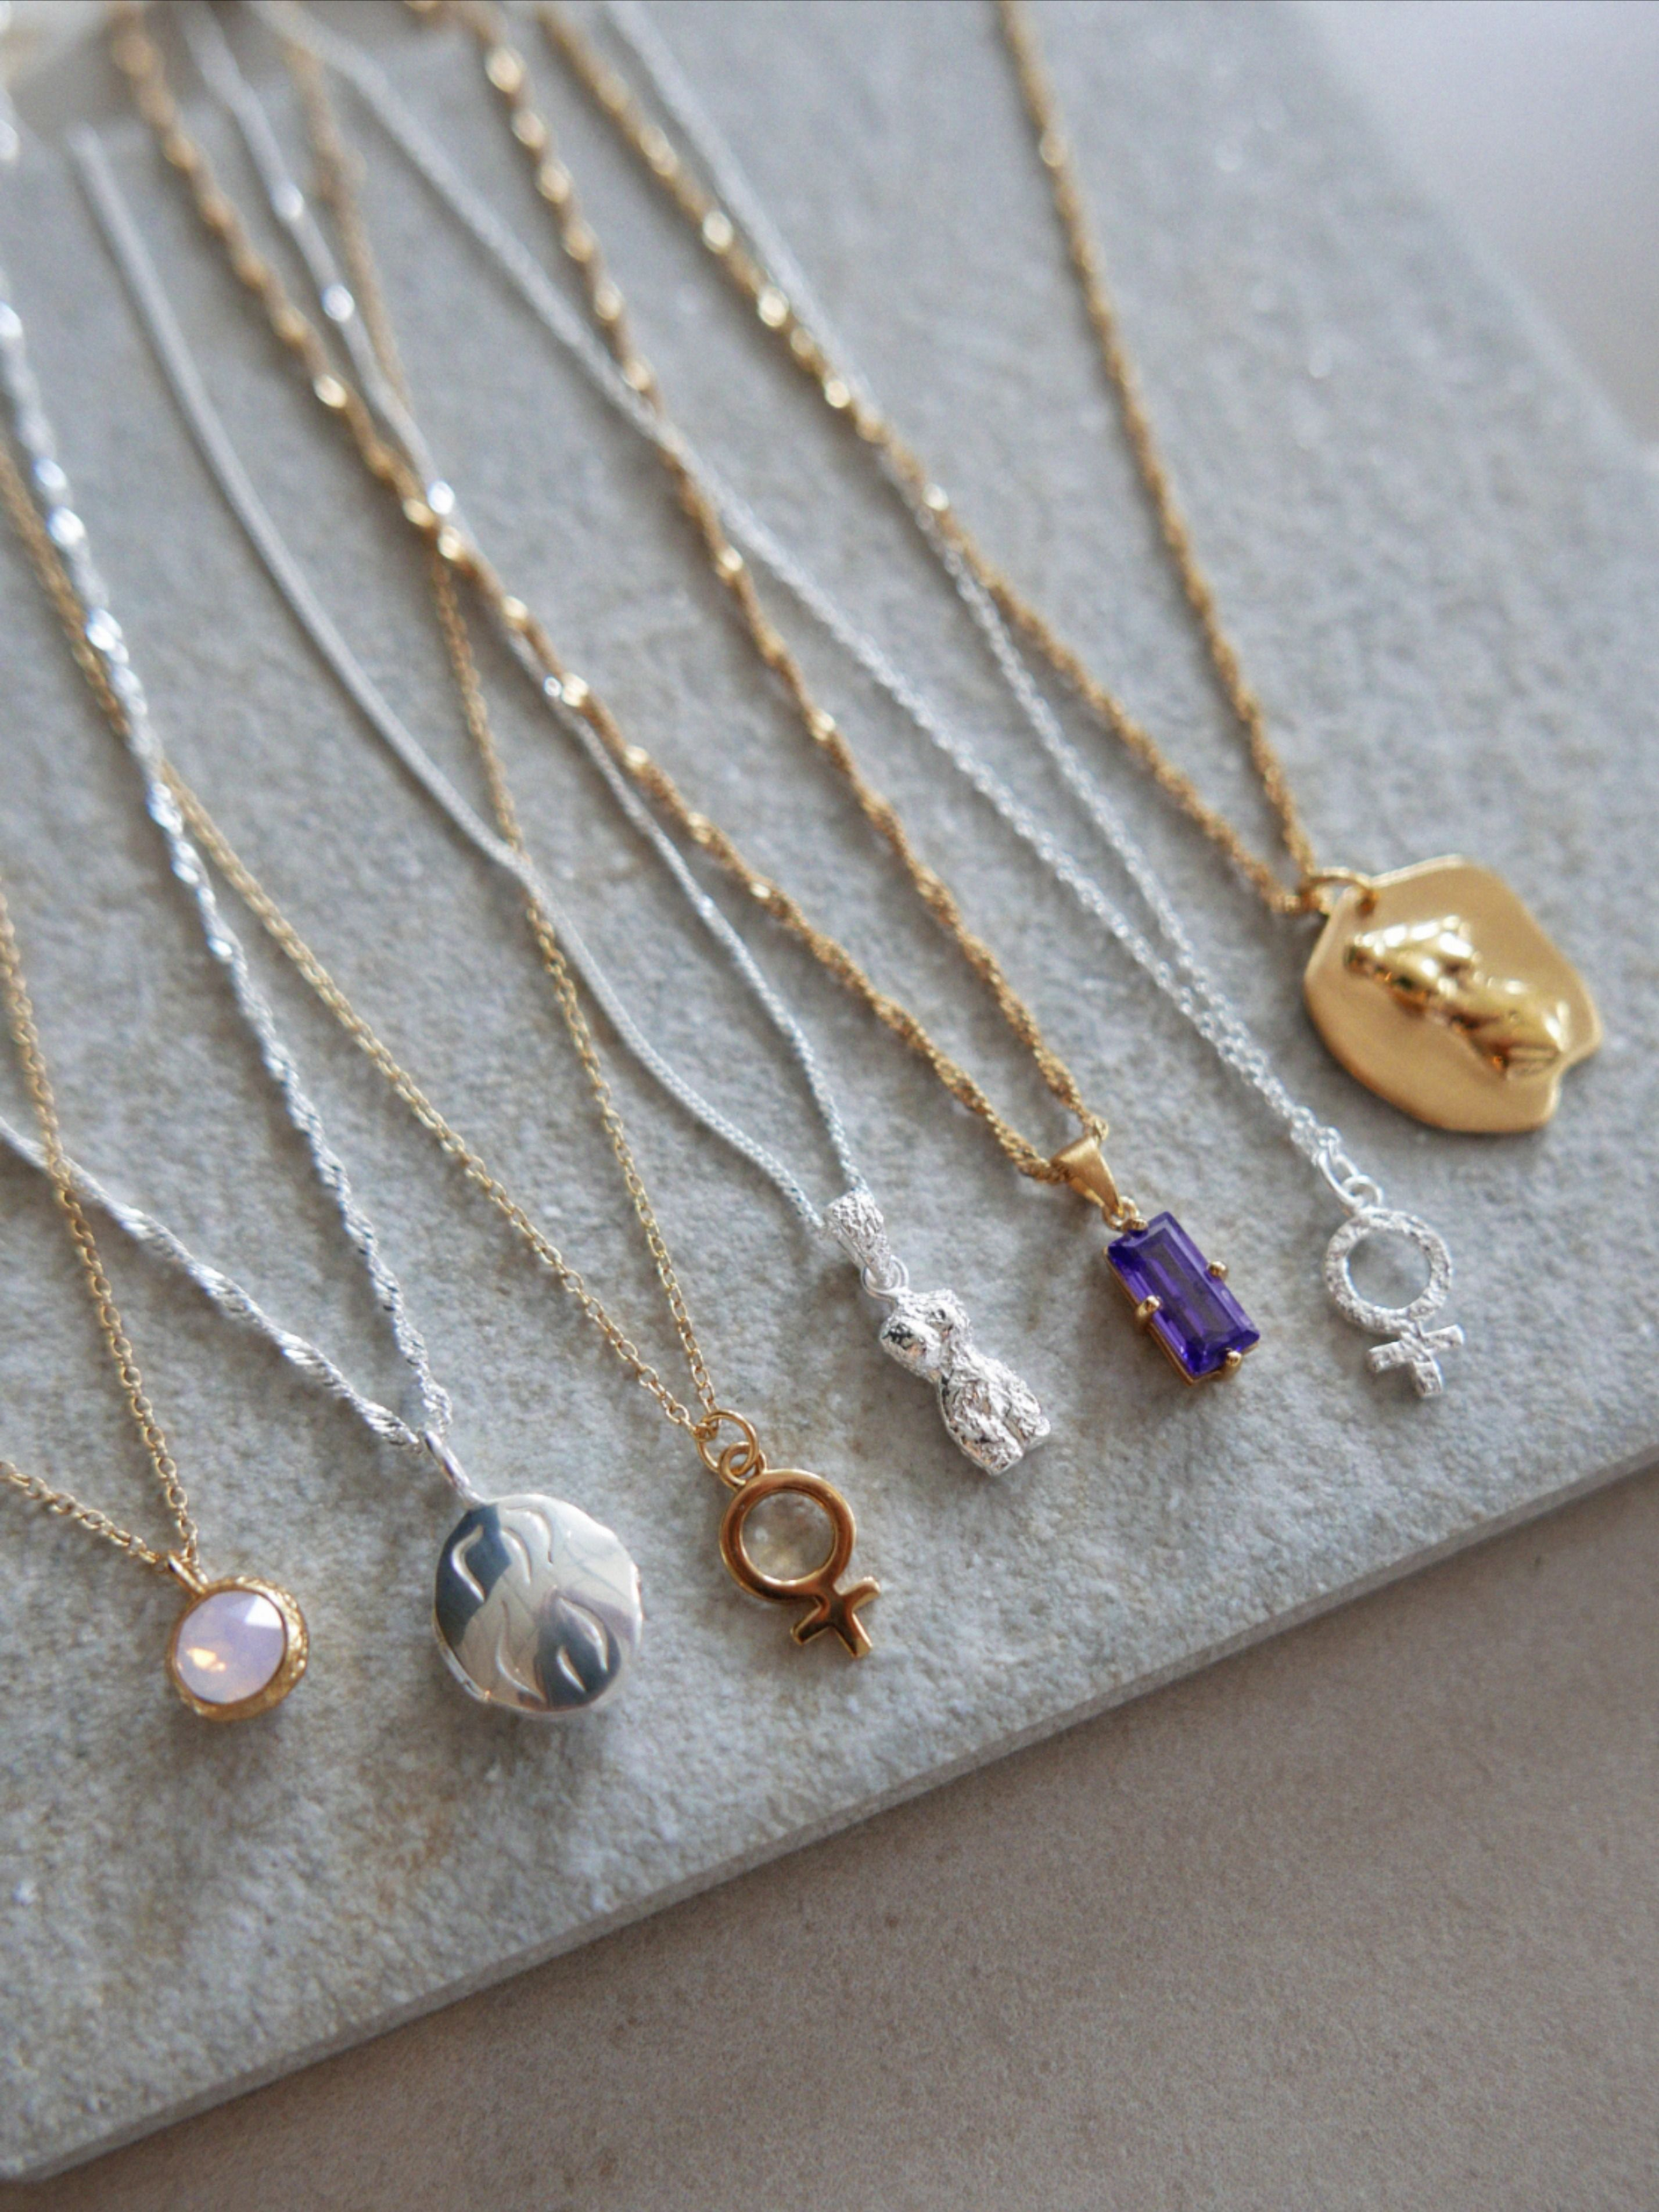 25+ How to donate jewelry to charity ideas in 2021